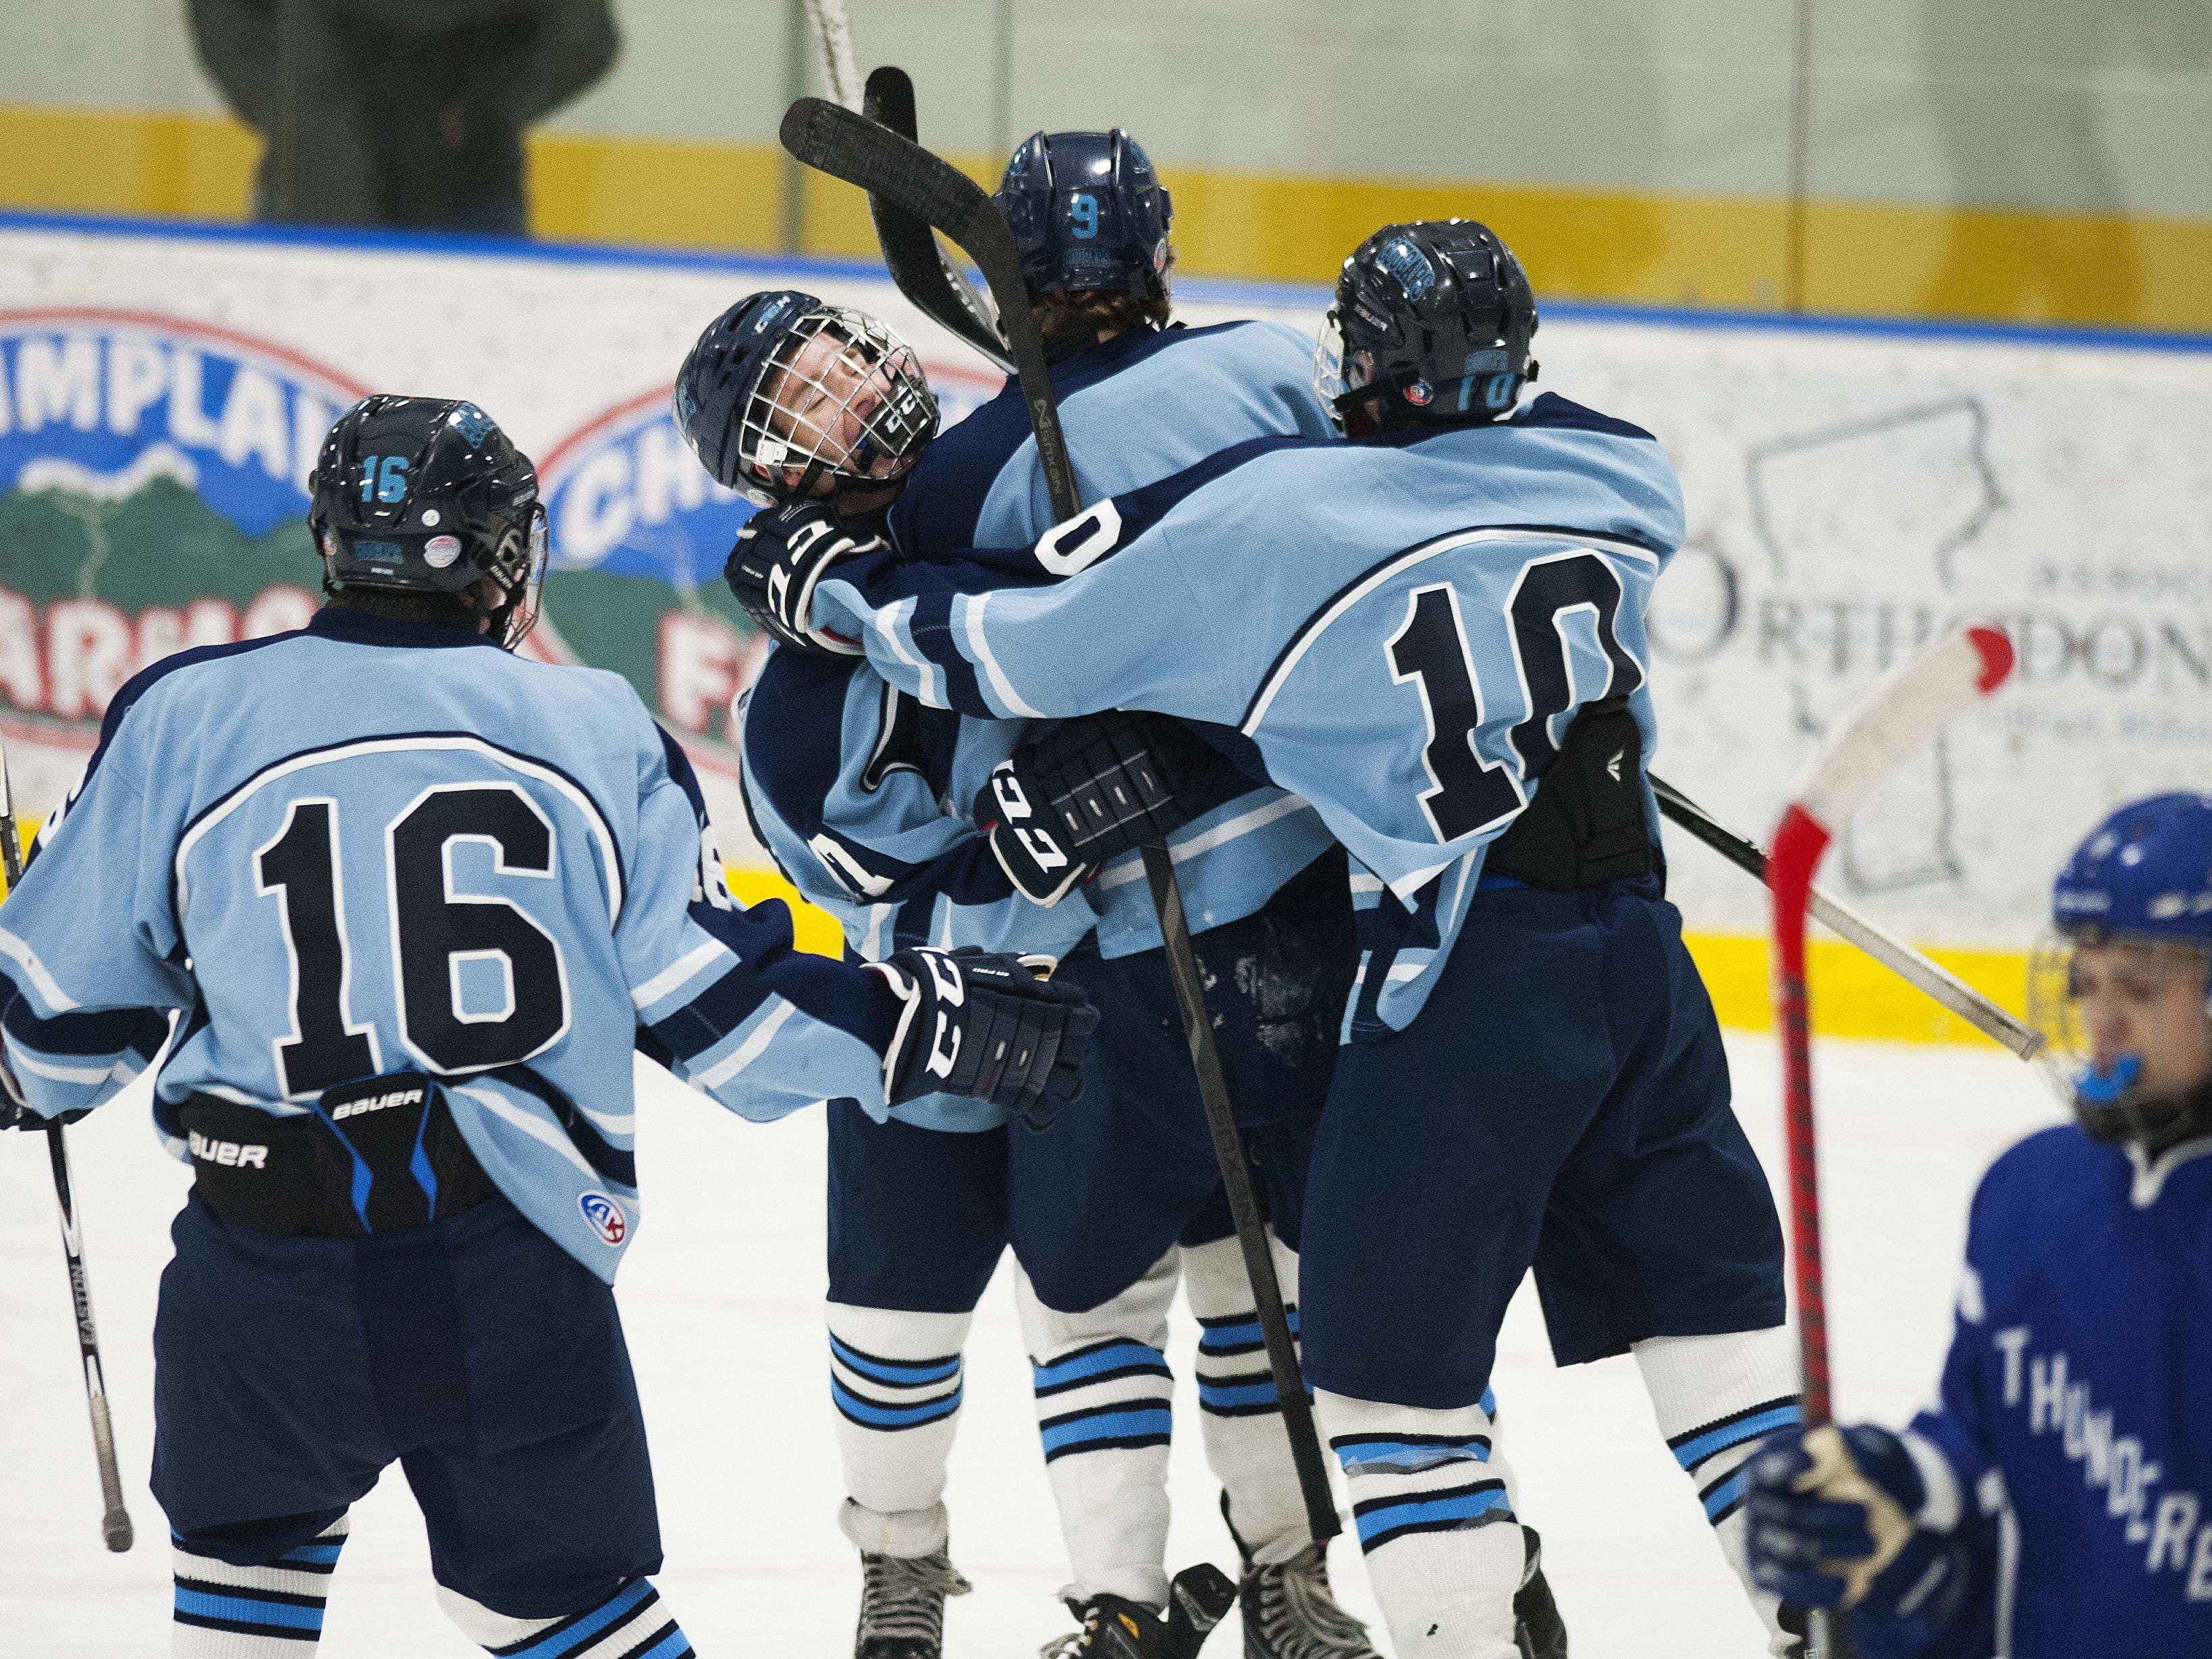 Mount Mansfield Union celebrates a goal during a high school boys hockey game against Missisquoi Valley at the Essex Skating Facility on Saturday afternoon.